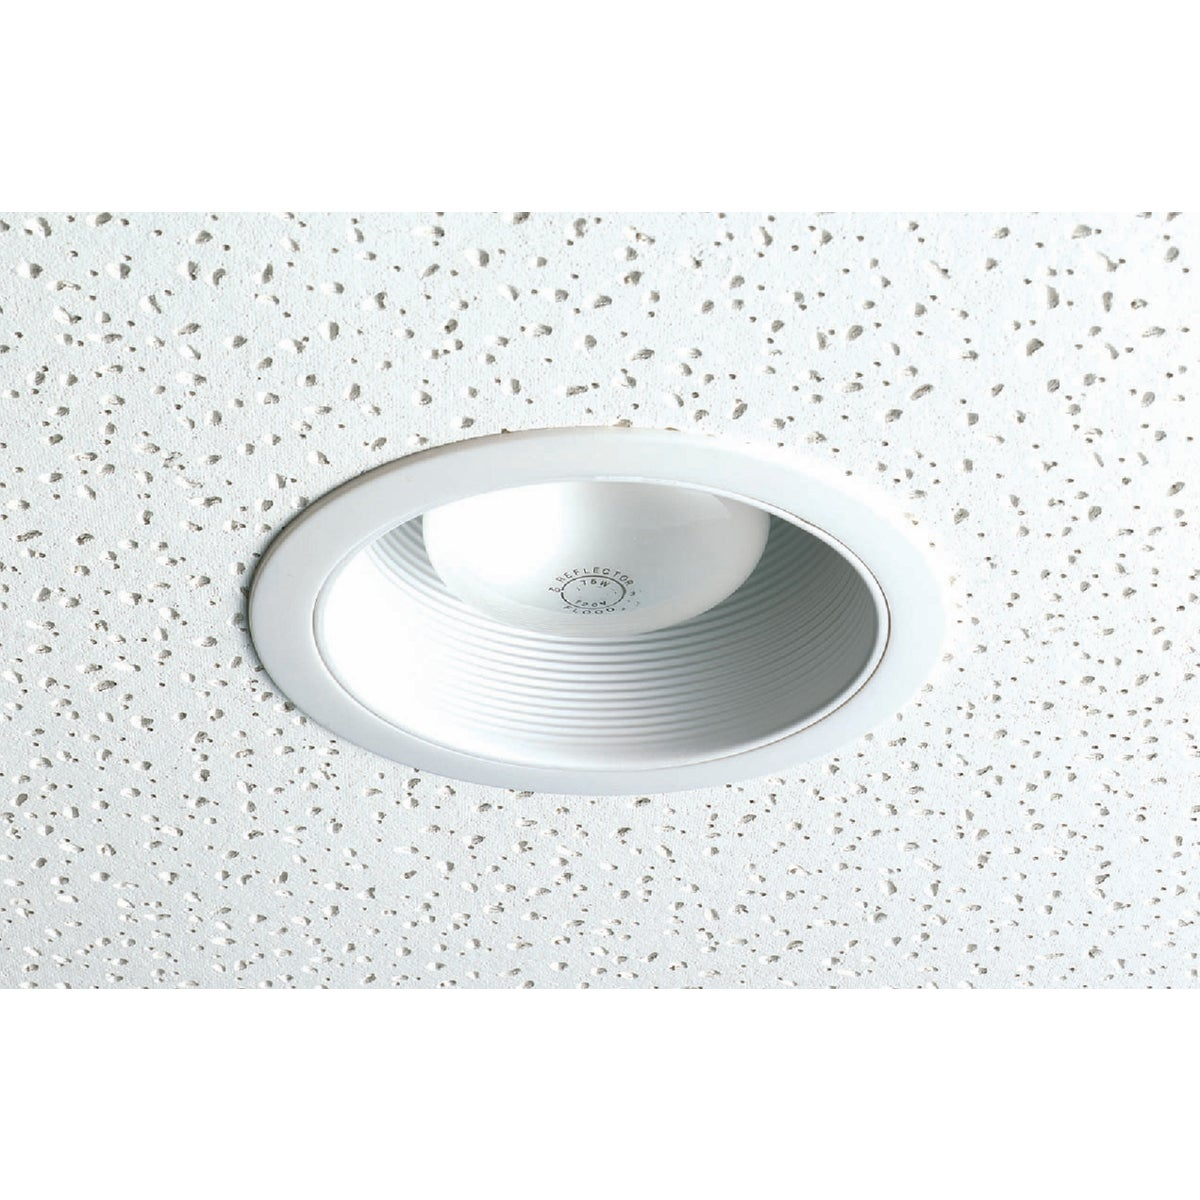 WHT RECESS FIXTURE TRIM - TRM30W by Philips Consumer Lum